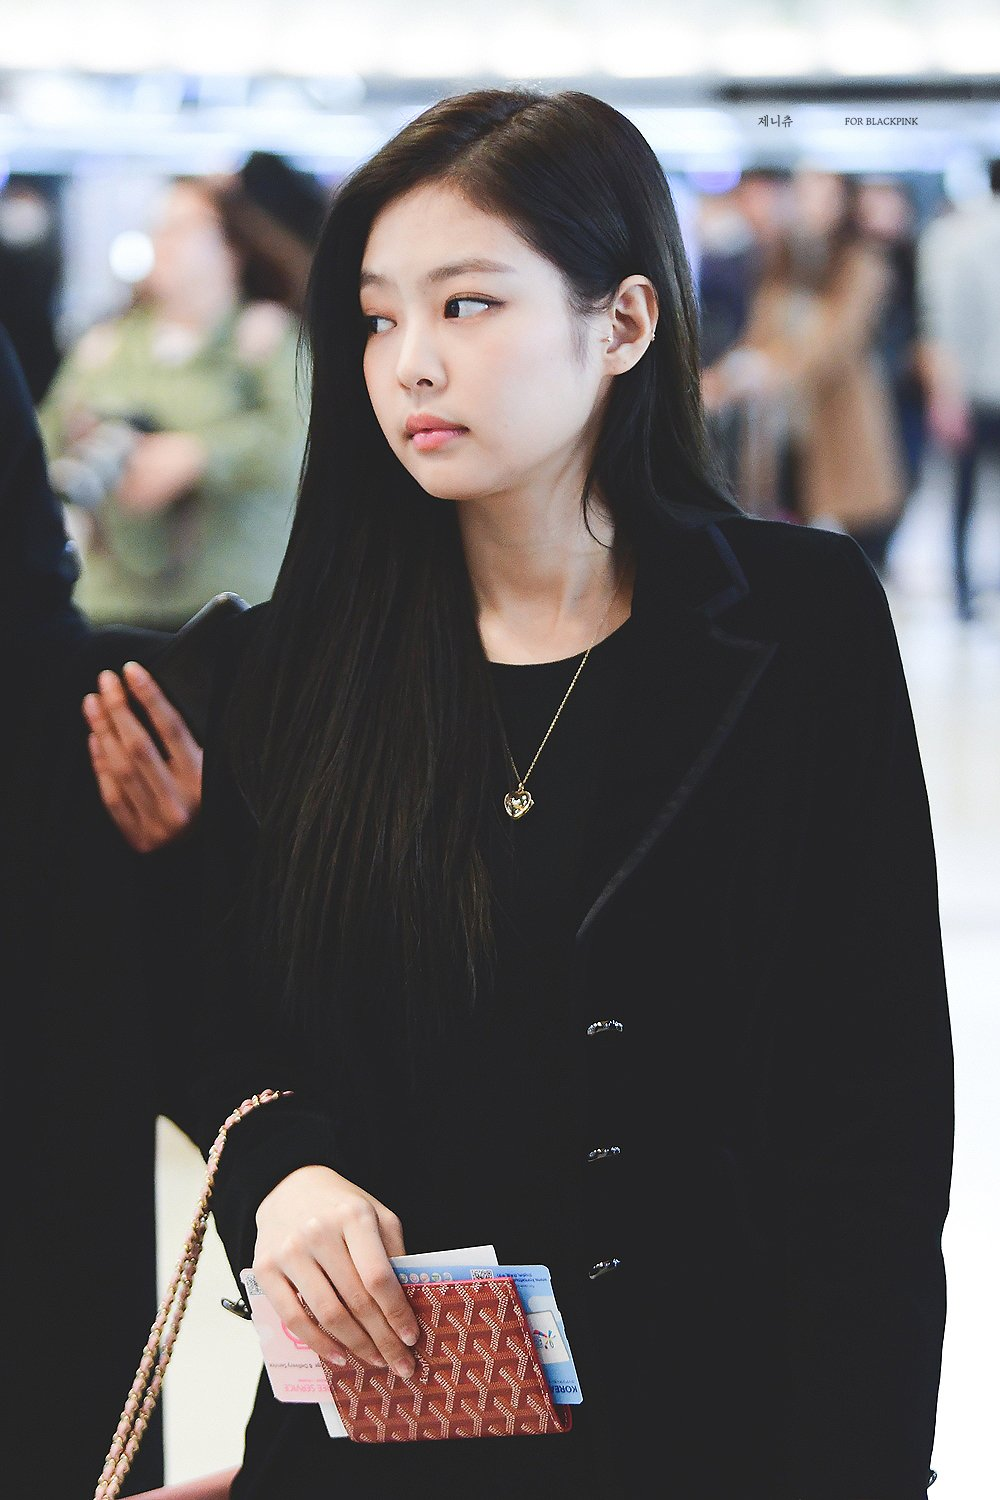 Blackpink Jennie Airport Fashion 27 March 2018